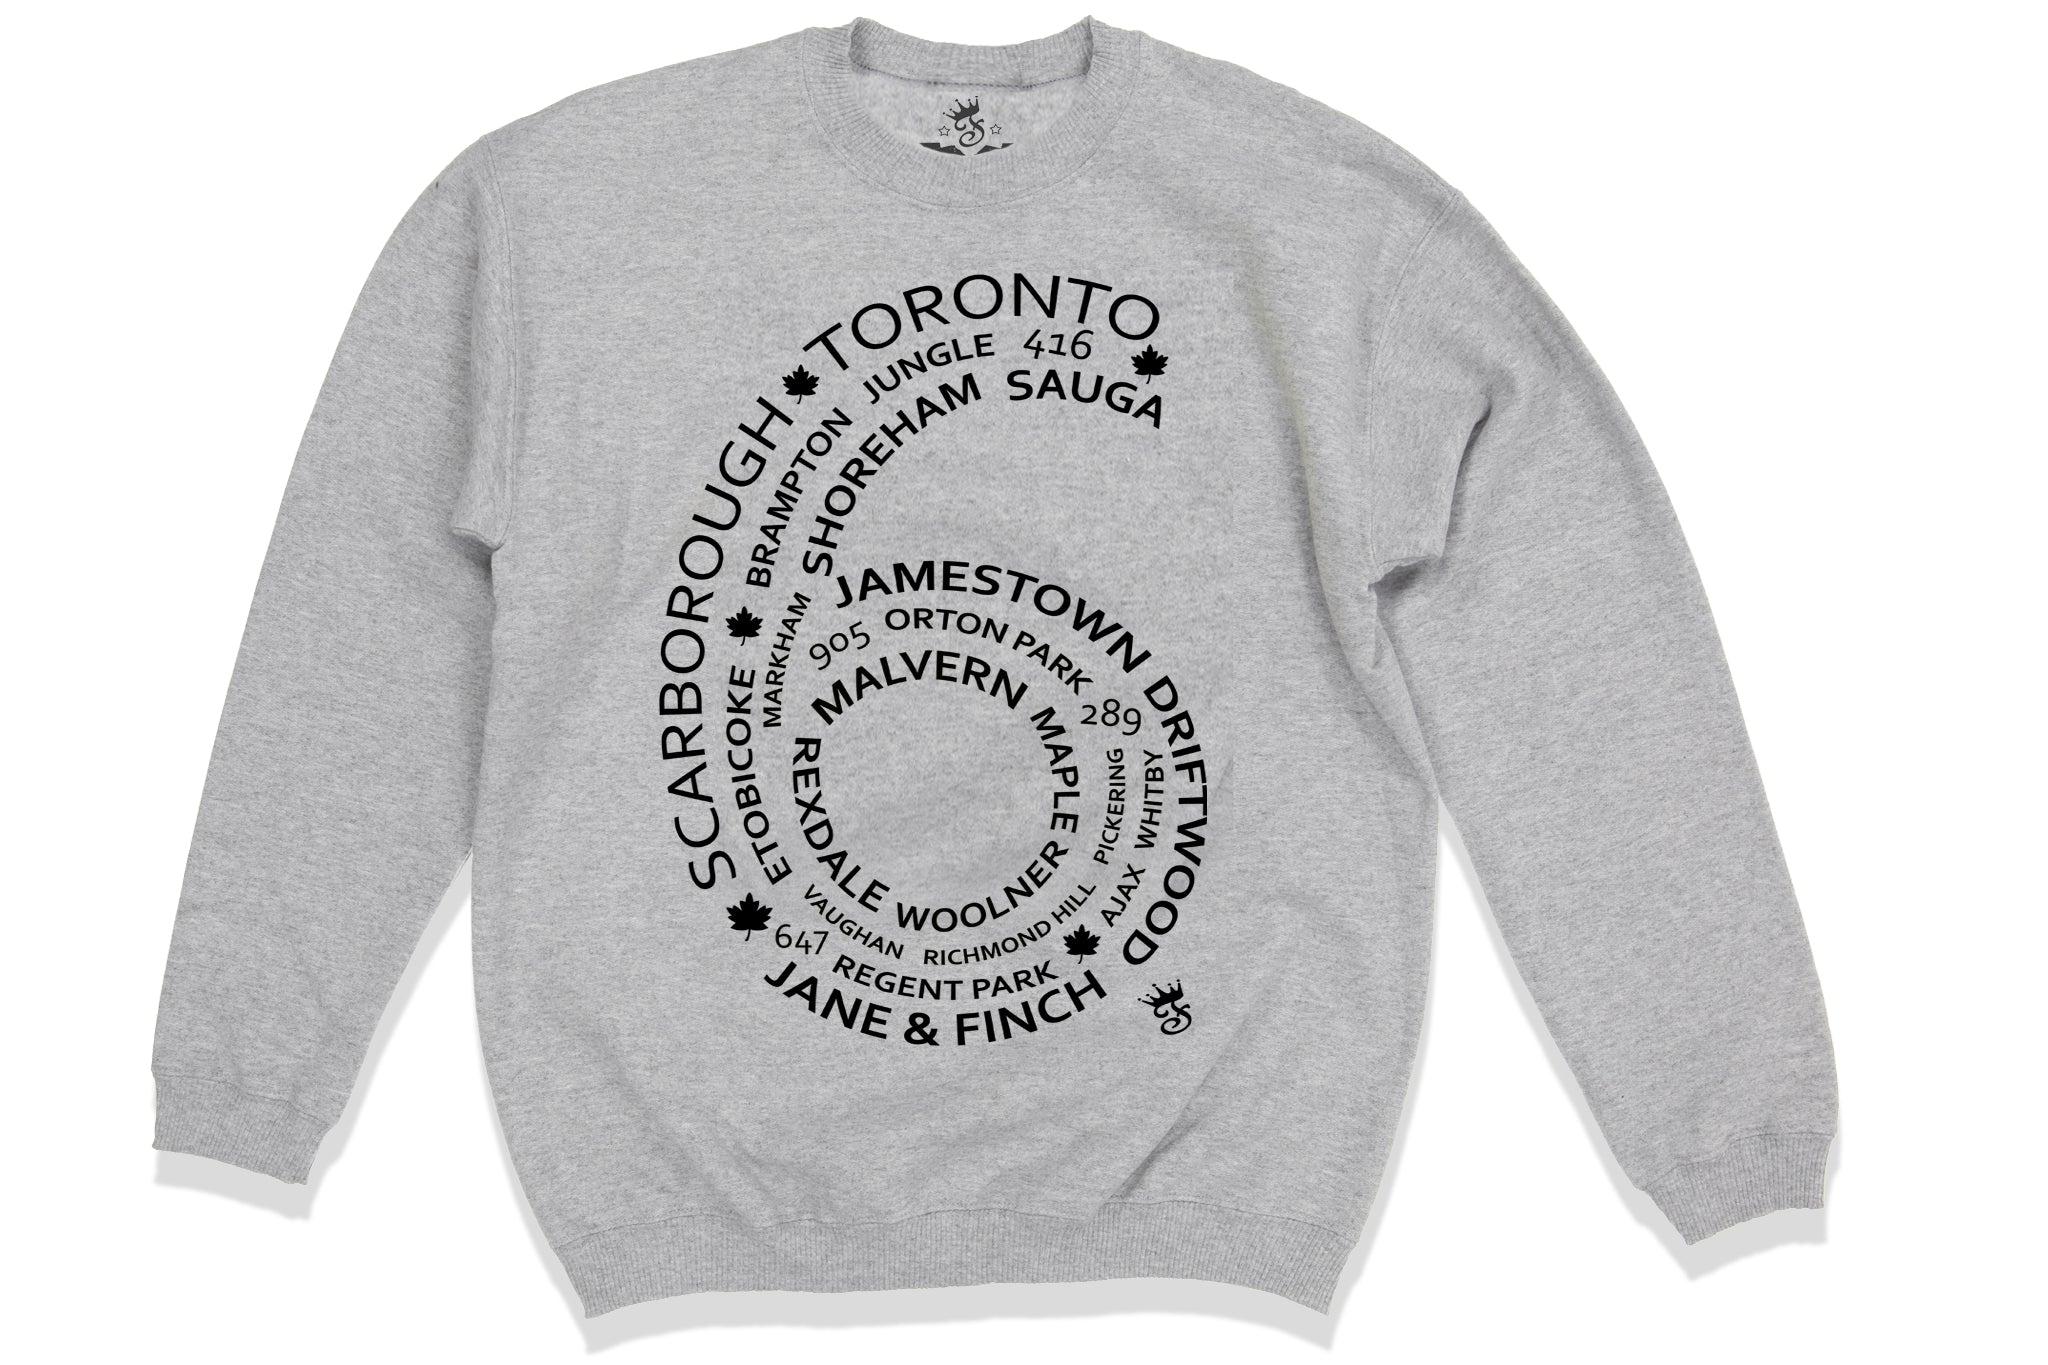 Toronto Streetwear Multi City Design 6 Side - Famous Club Clothing